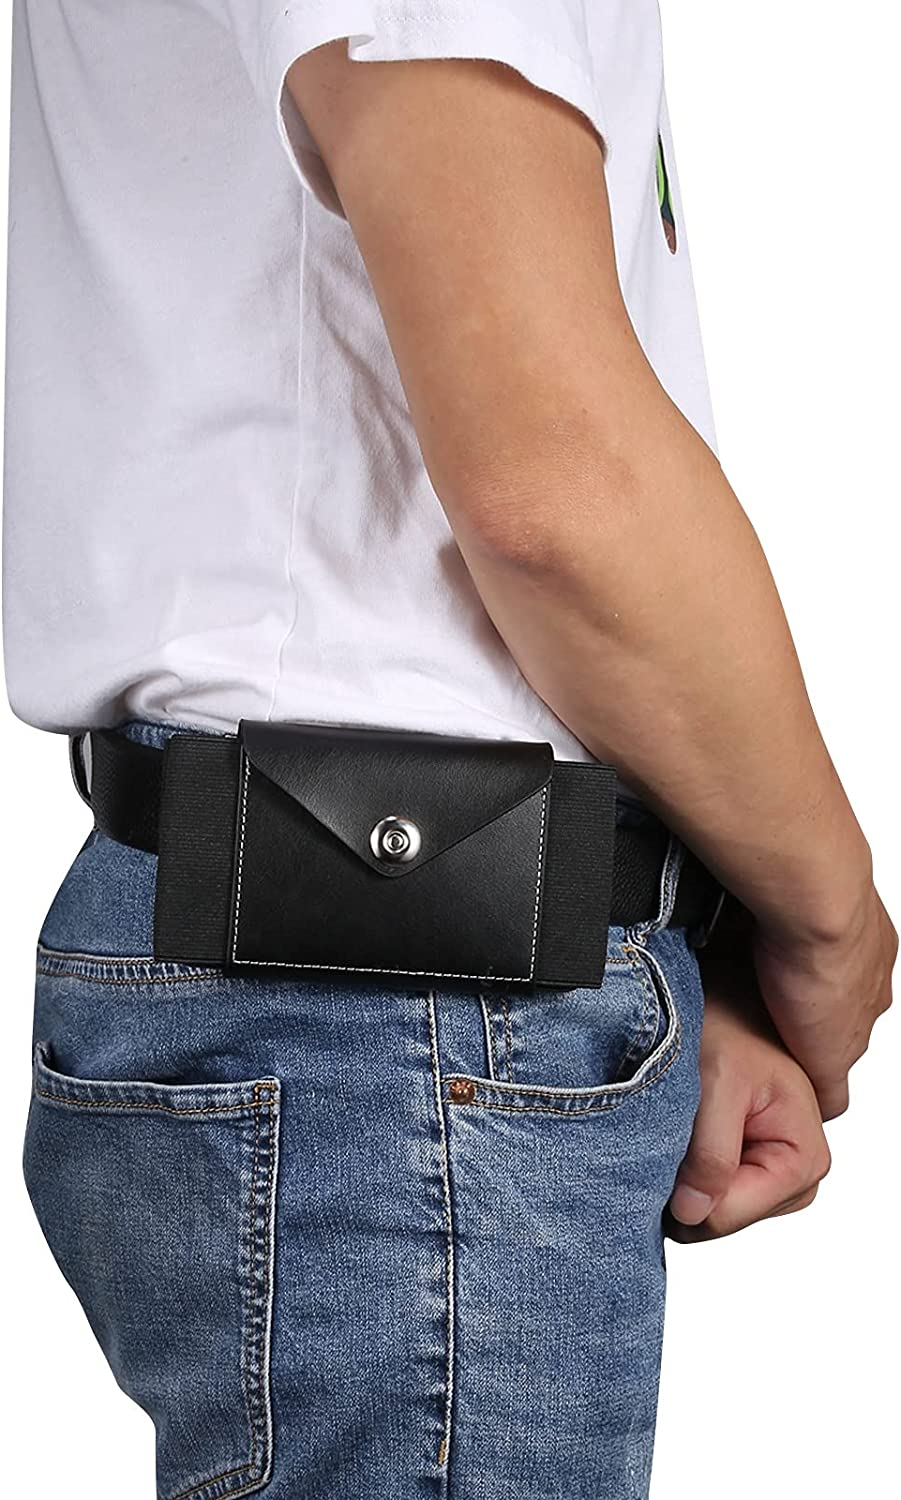 Smartphone Protective Clips Genuine Leather Cell Phone Belt Holster For iPhone 11 Pro Max,11,XS Max,XR,8Plus, Phone Pouch Holster with Clip For Galaxy S21,s20,S20 5G,Note10,S10+,S9+,S8+ Phone Bag